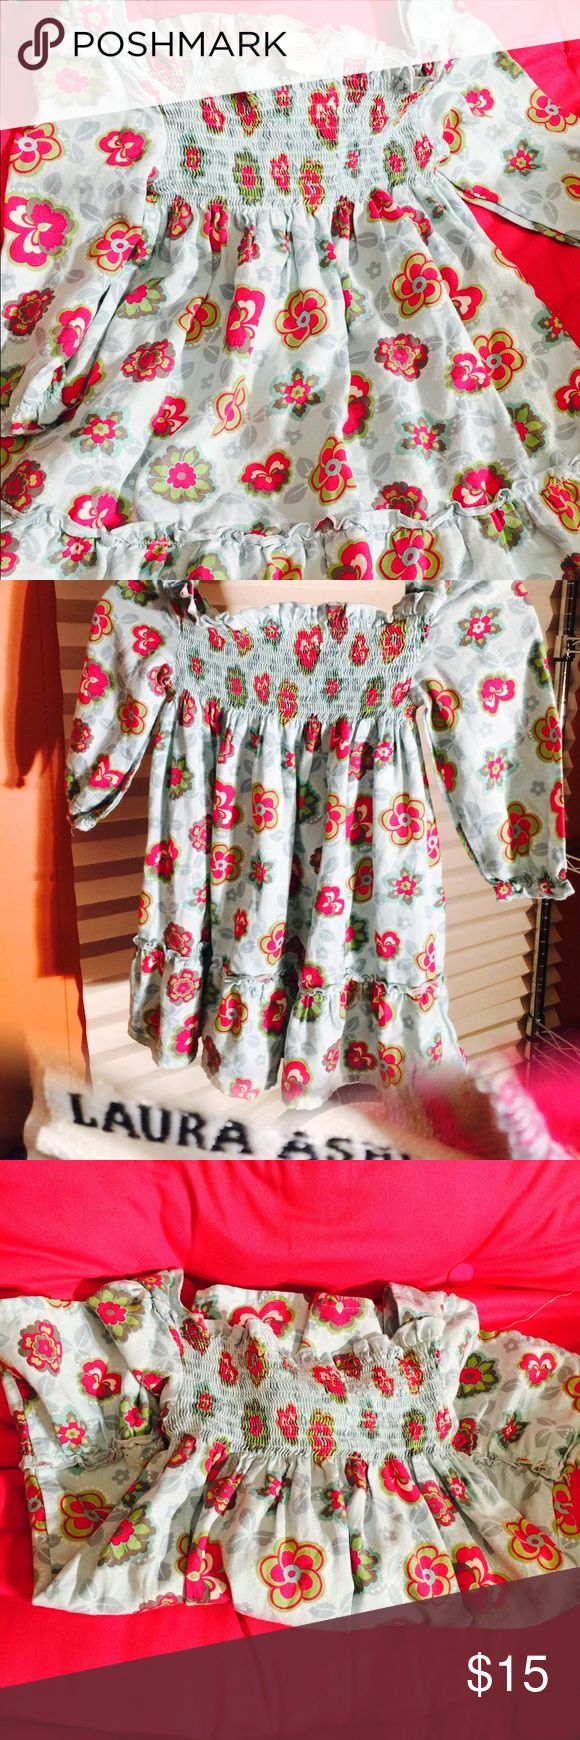 Laura Ashley dress New without tags lil girl size 5 Laura Ashley dress smock bodice, long sleeve turquoise with pink flowers 🌺 i wish they made it in my size really cute summer easter dress (Shop and feel good about it 😁. Part of the money u spend goes to Purple Heart Foundation 💜) Laura Ashley Dresses Casual